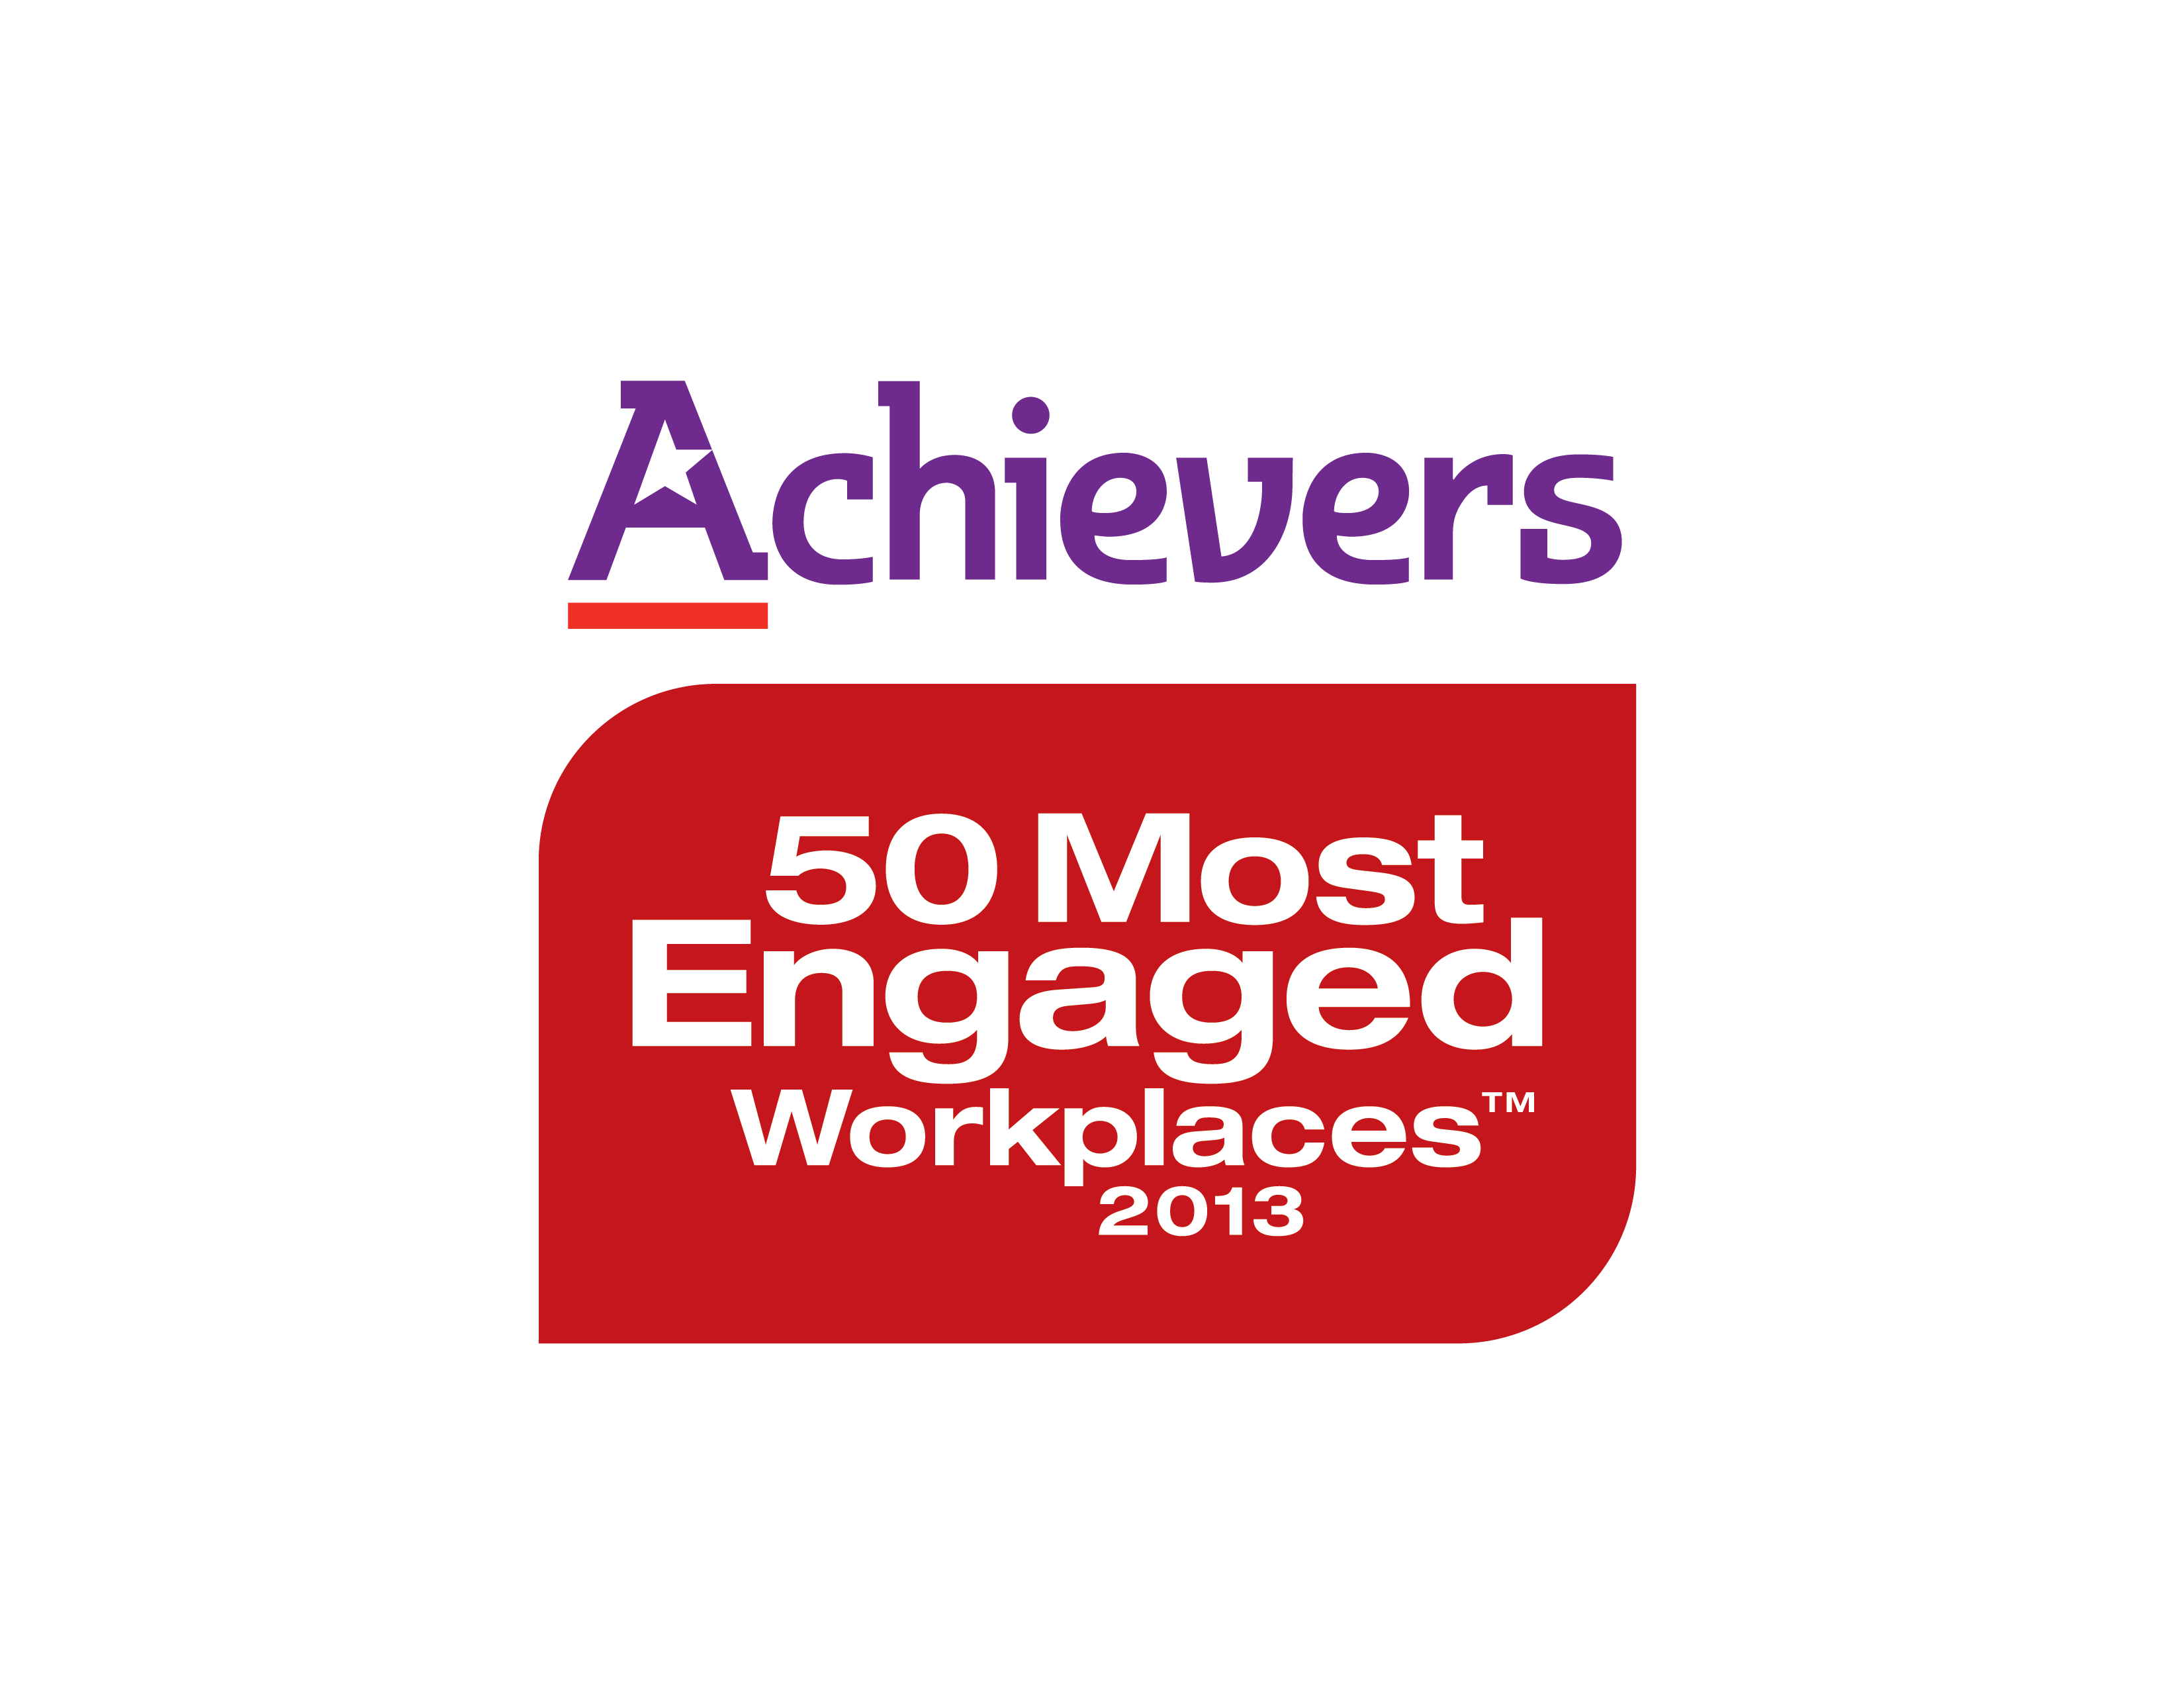 Sundance Vacations Recognized as one of the Achievers 50 Most Engaged Workplaces™ in the United States